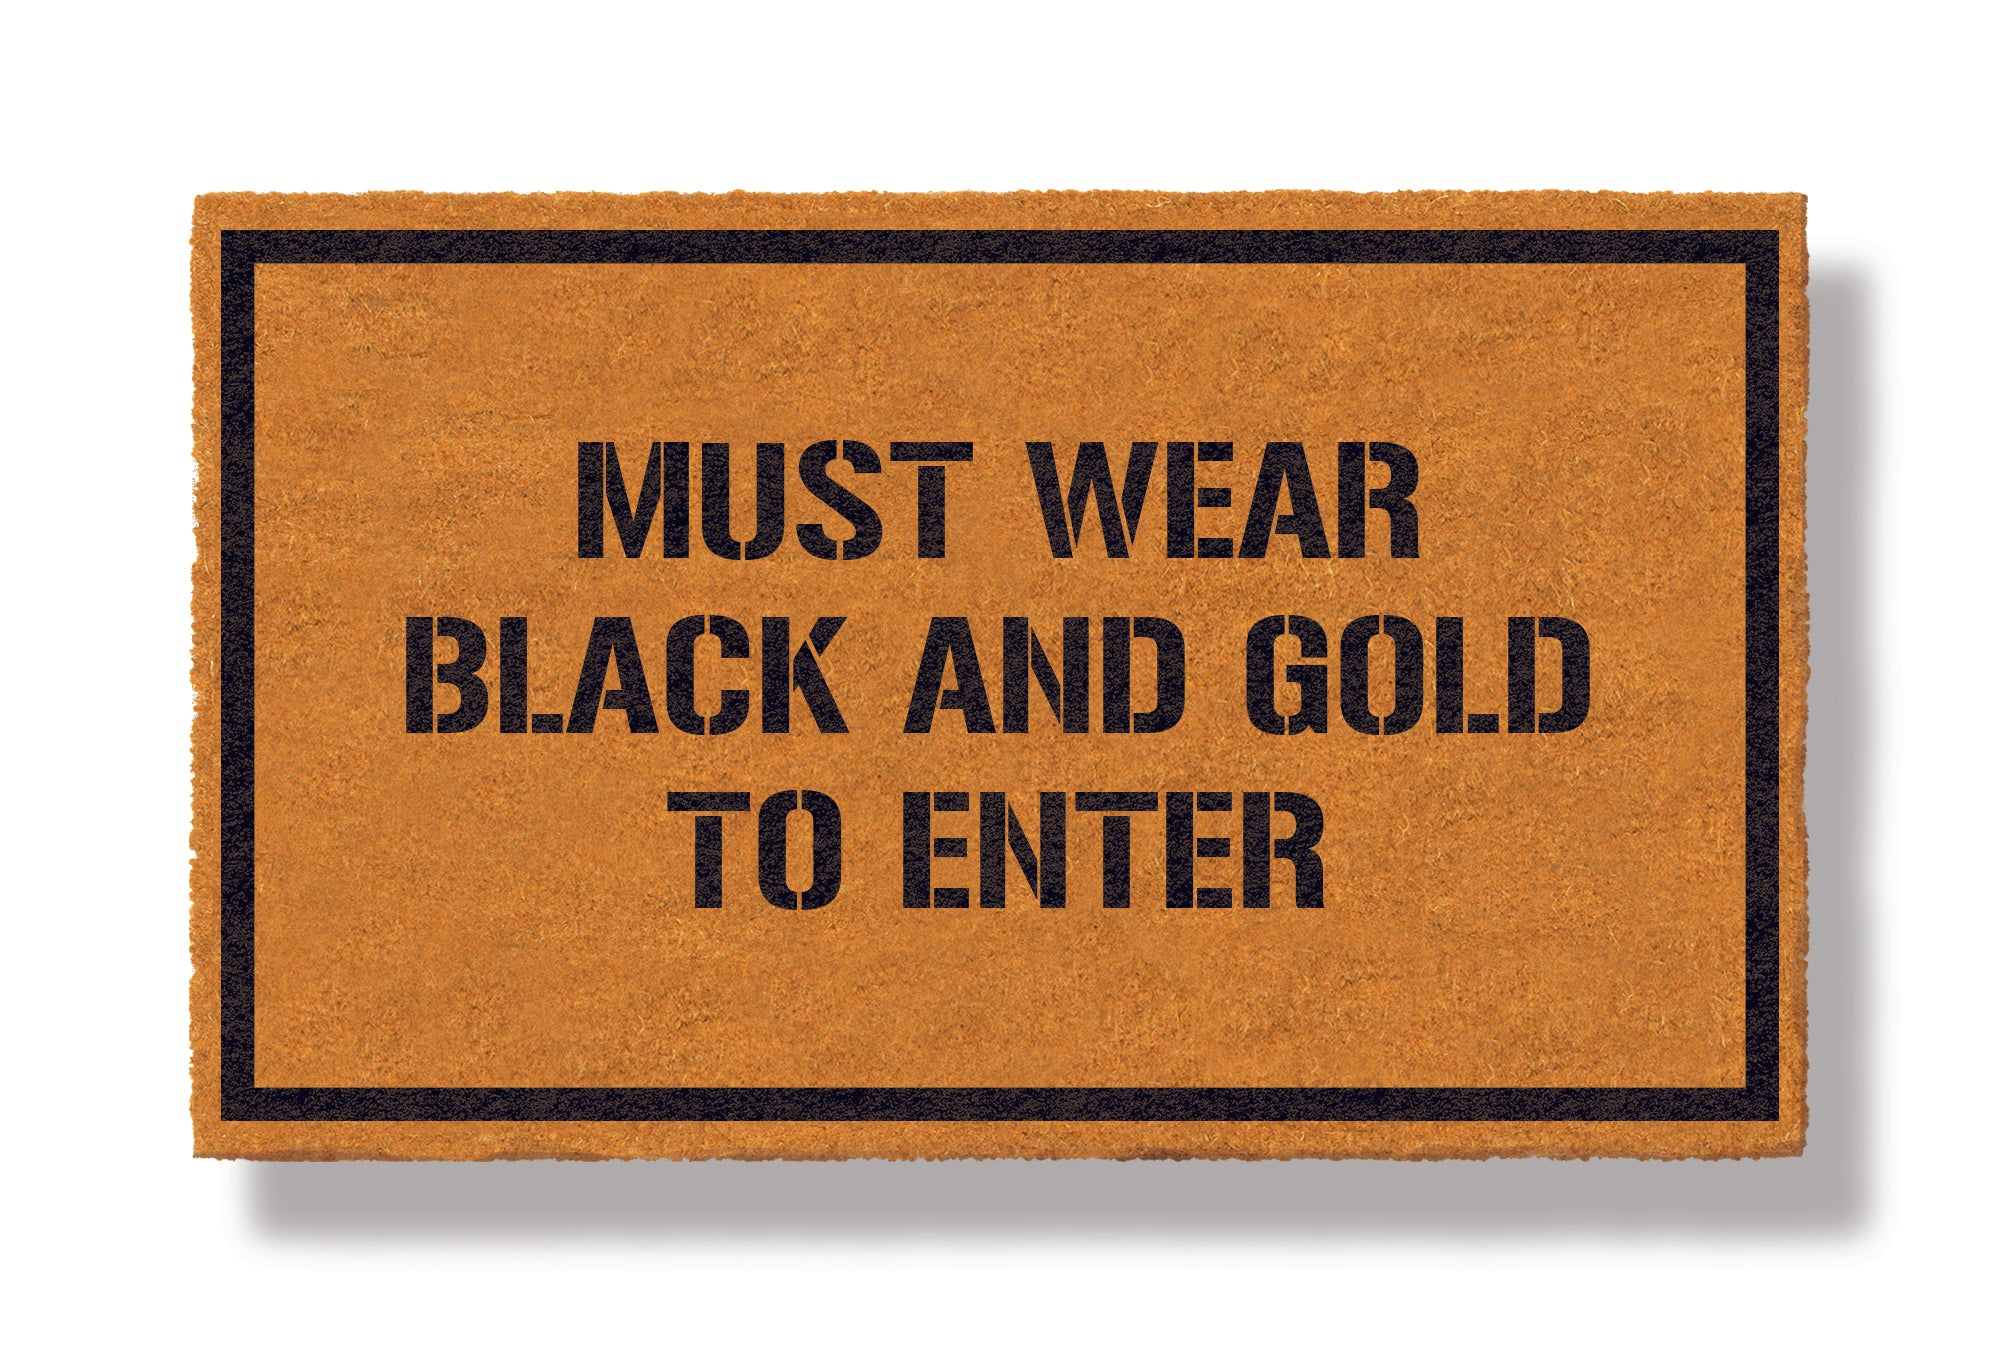 This coir welcome mat is a funny doormat on a white background with a drop shadow. The brown doormat has a black border and has black centered text that reads Must Wear Black and Gold to Enter.